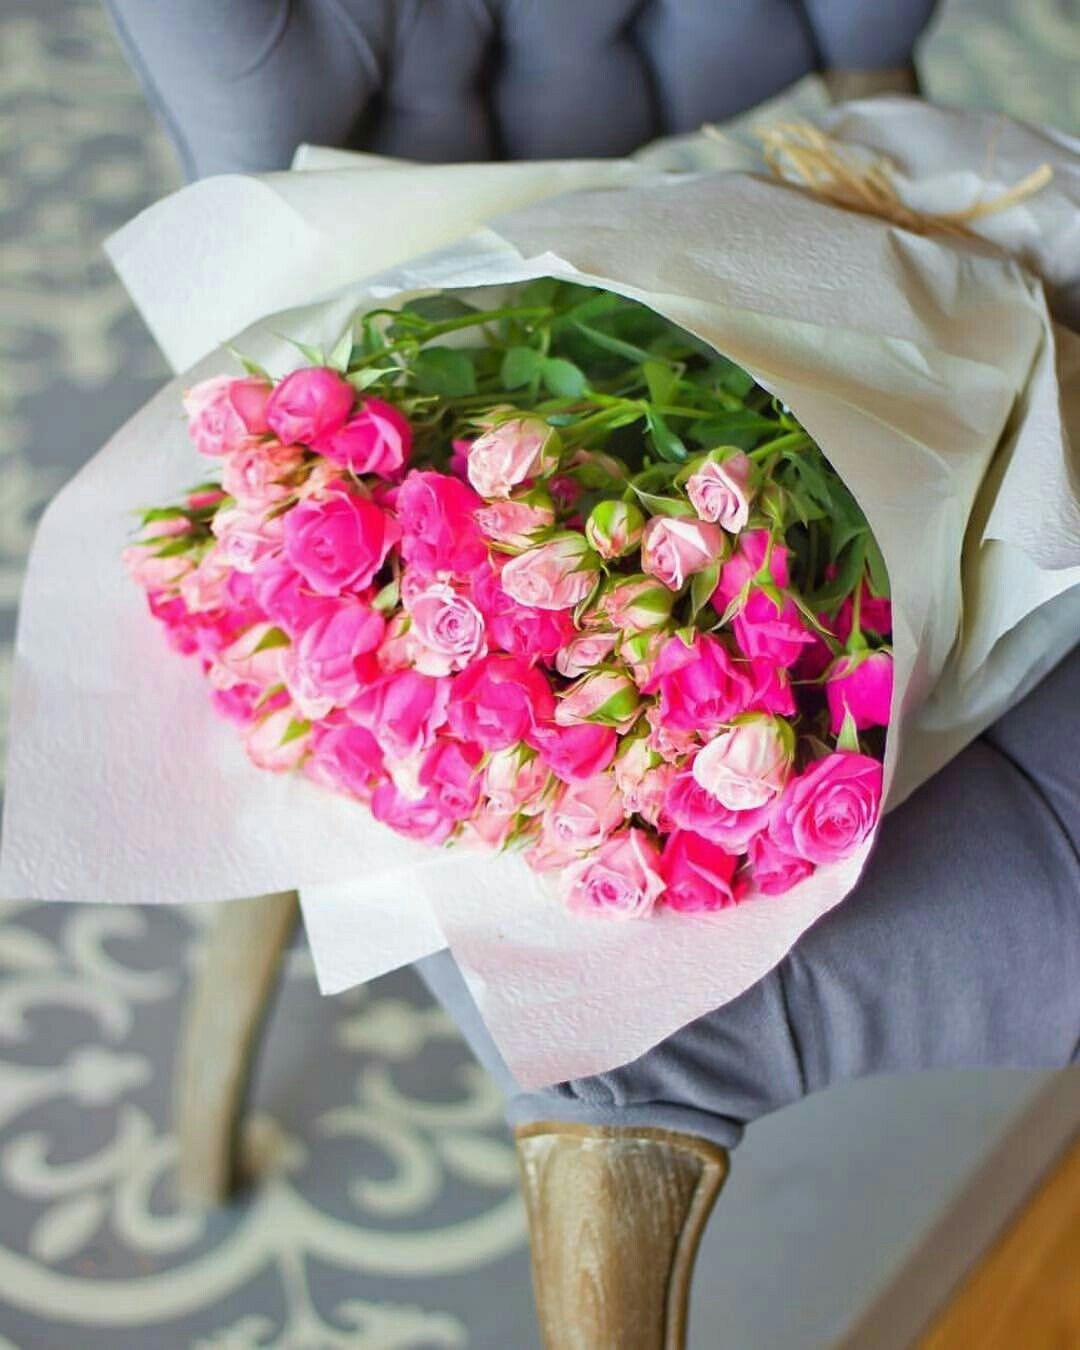 Pin By Lolo Kh On Pink Roses ورد وردي Pretty Wallpapers Flowers Table Decorations